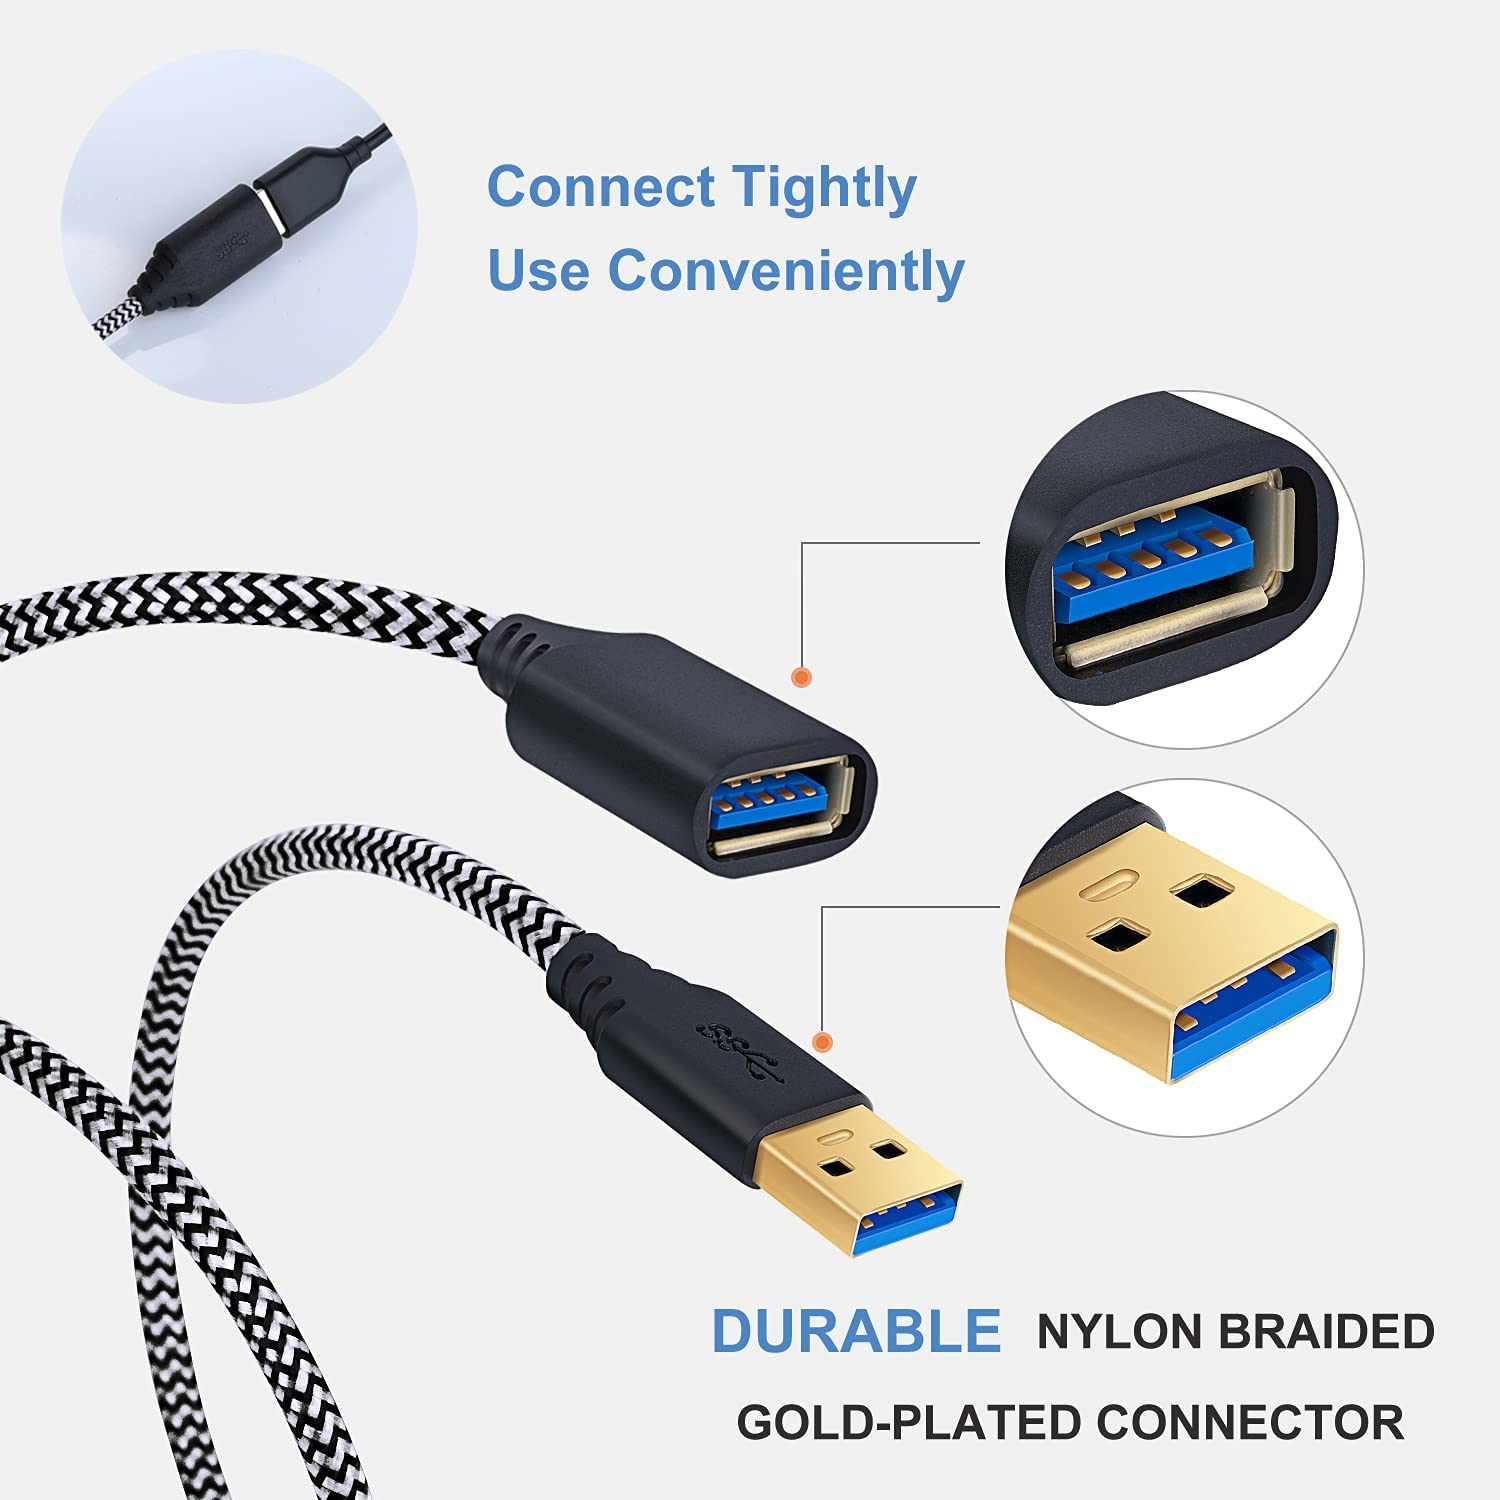 USB Extension Cable 10FT, OKRAY 3-Pack USB 3.0 Extension Cable Type A Male to A Female Extender Cord Nylon Braided with Gold Plated Connector for USB Flash Drive/Hard Drive/Hub (White White White)